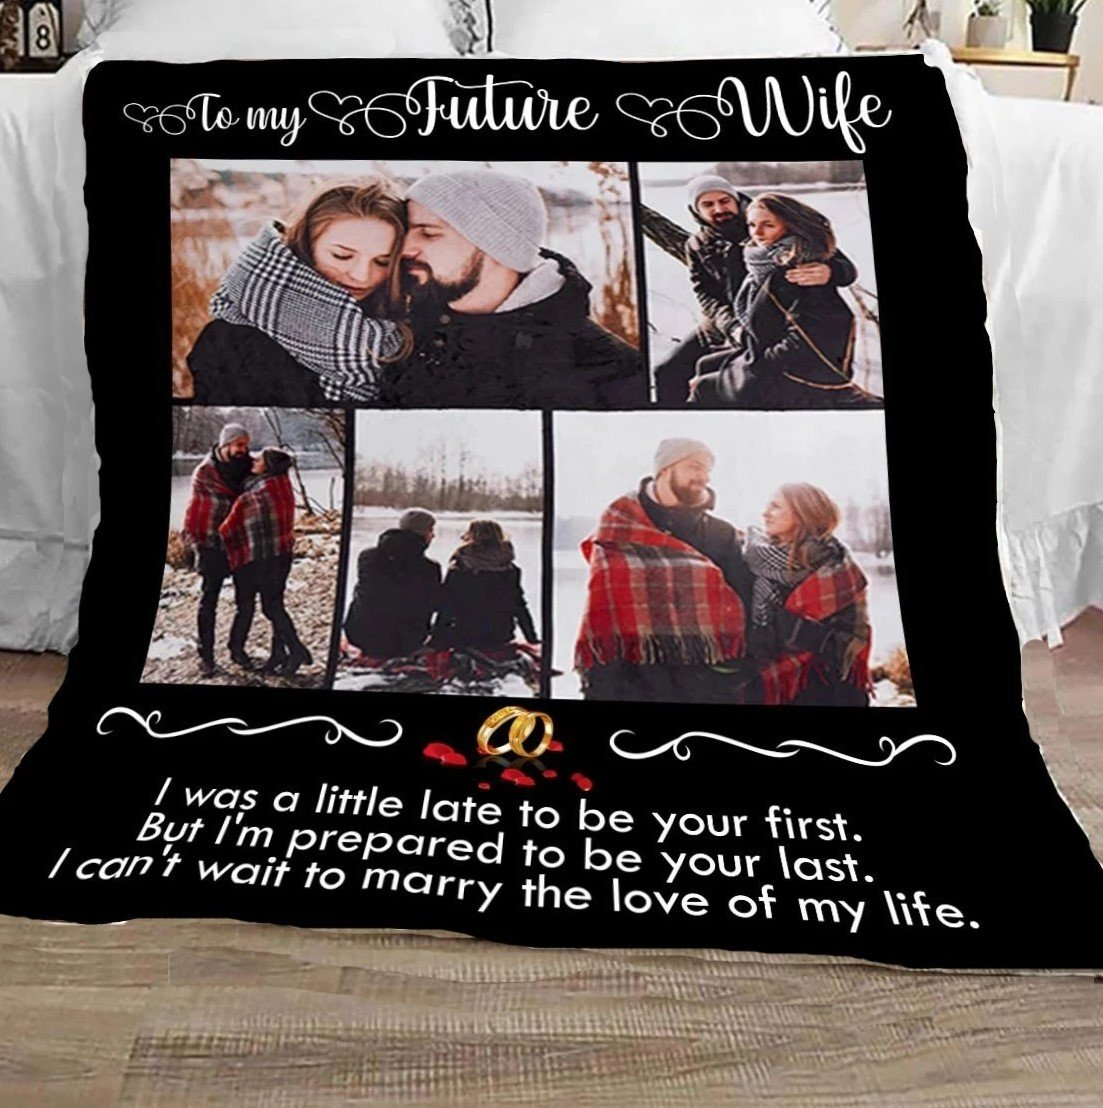 Personalized I can't wait to marry the love of my life blanket Gifts for wife